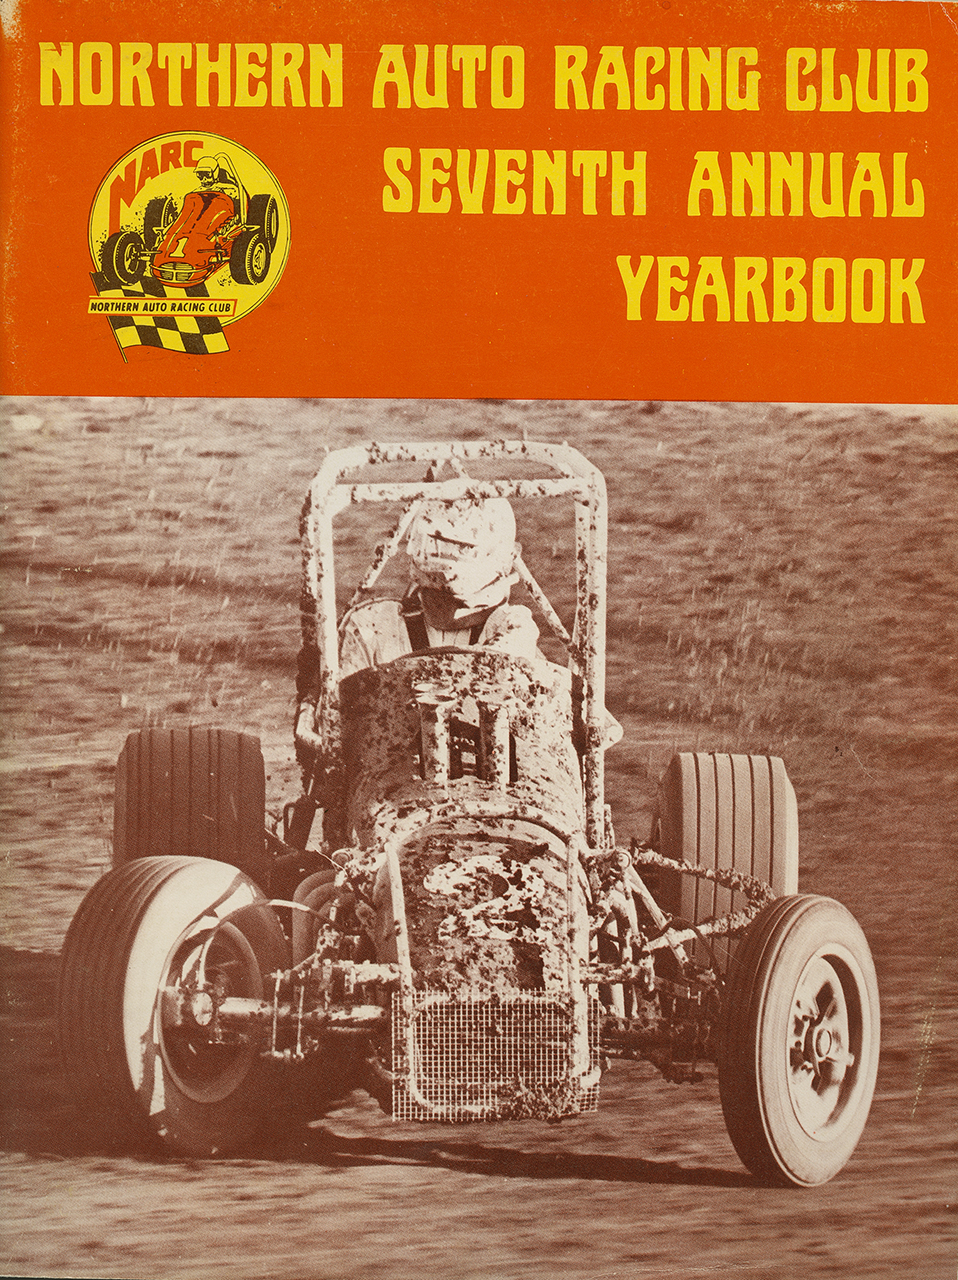 On the cover of the 1975 NARC yearbook, champion Van Conett in the first turn at Calistoga, driving Ted Hunting's sprint car.